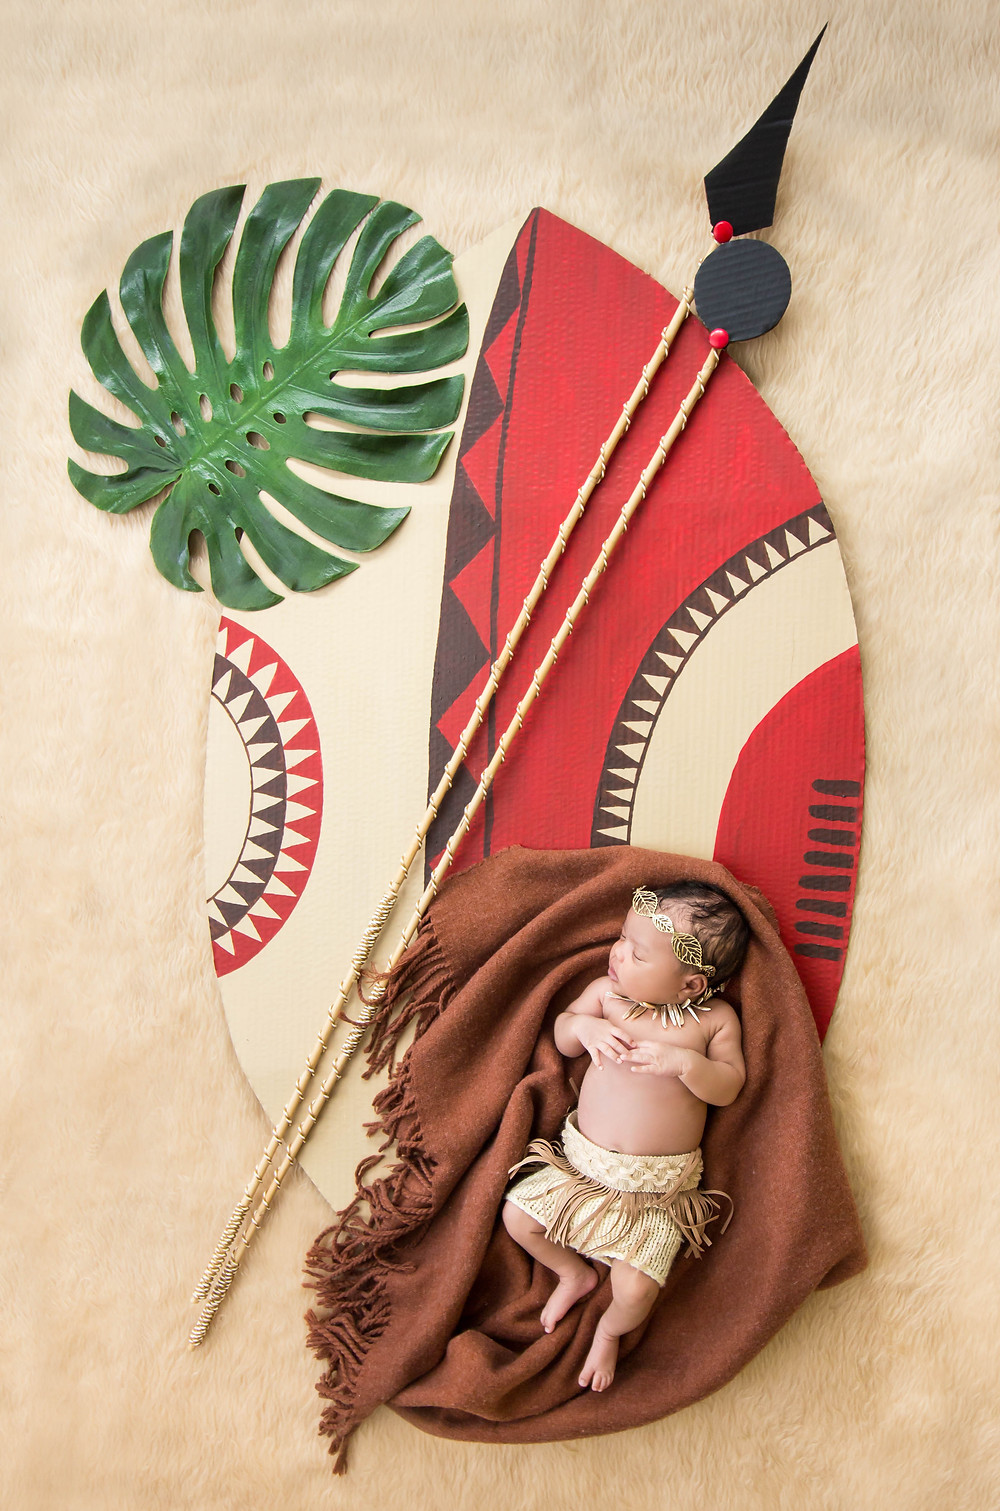 An African American newborn baby on a Zulu shield prop with a spear, a club and a tropical leaf